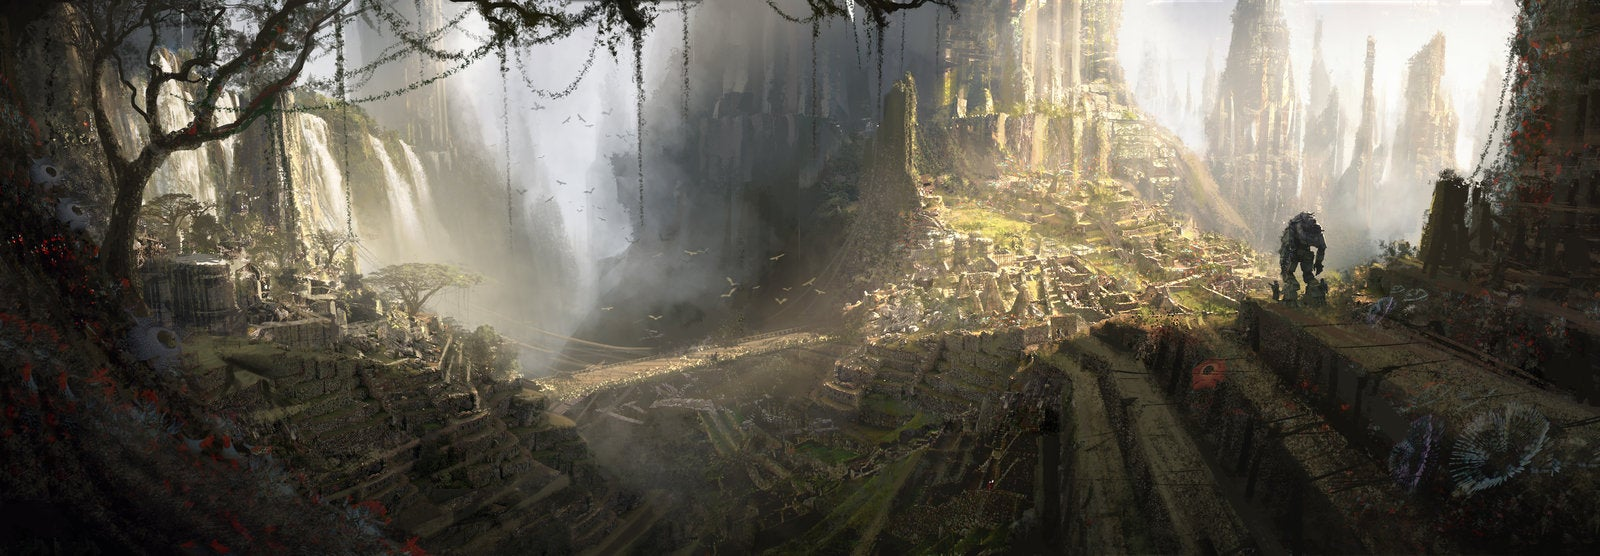 The Best Video Game Concept Art Of 2014*